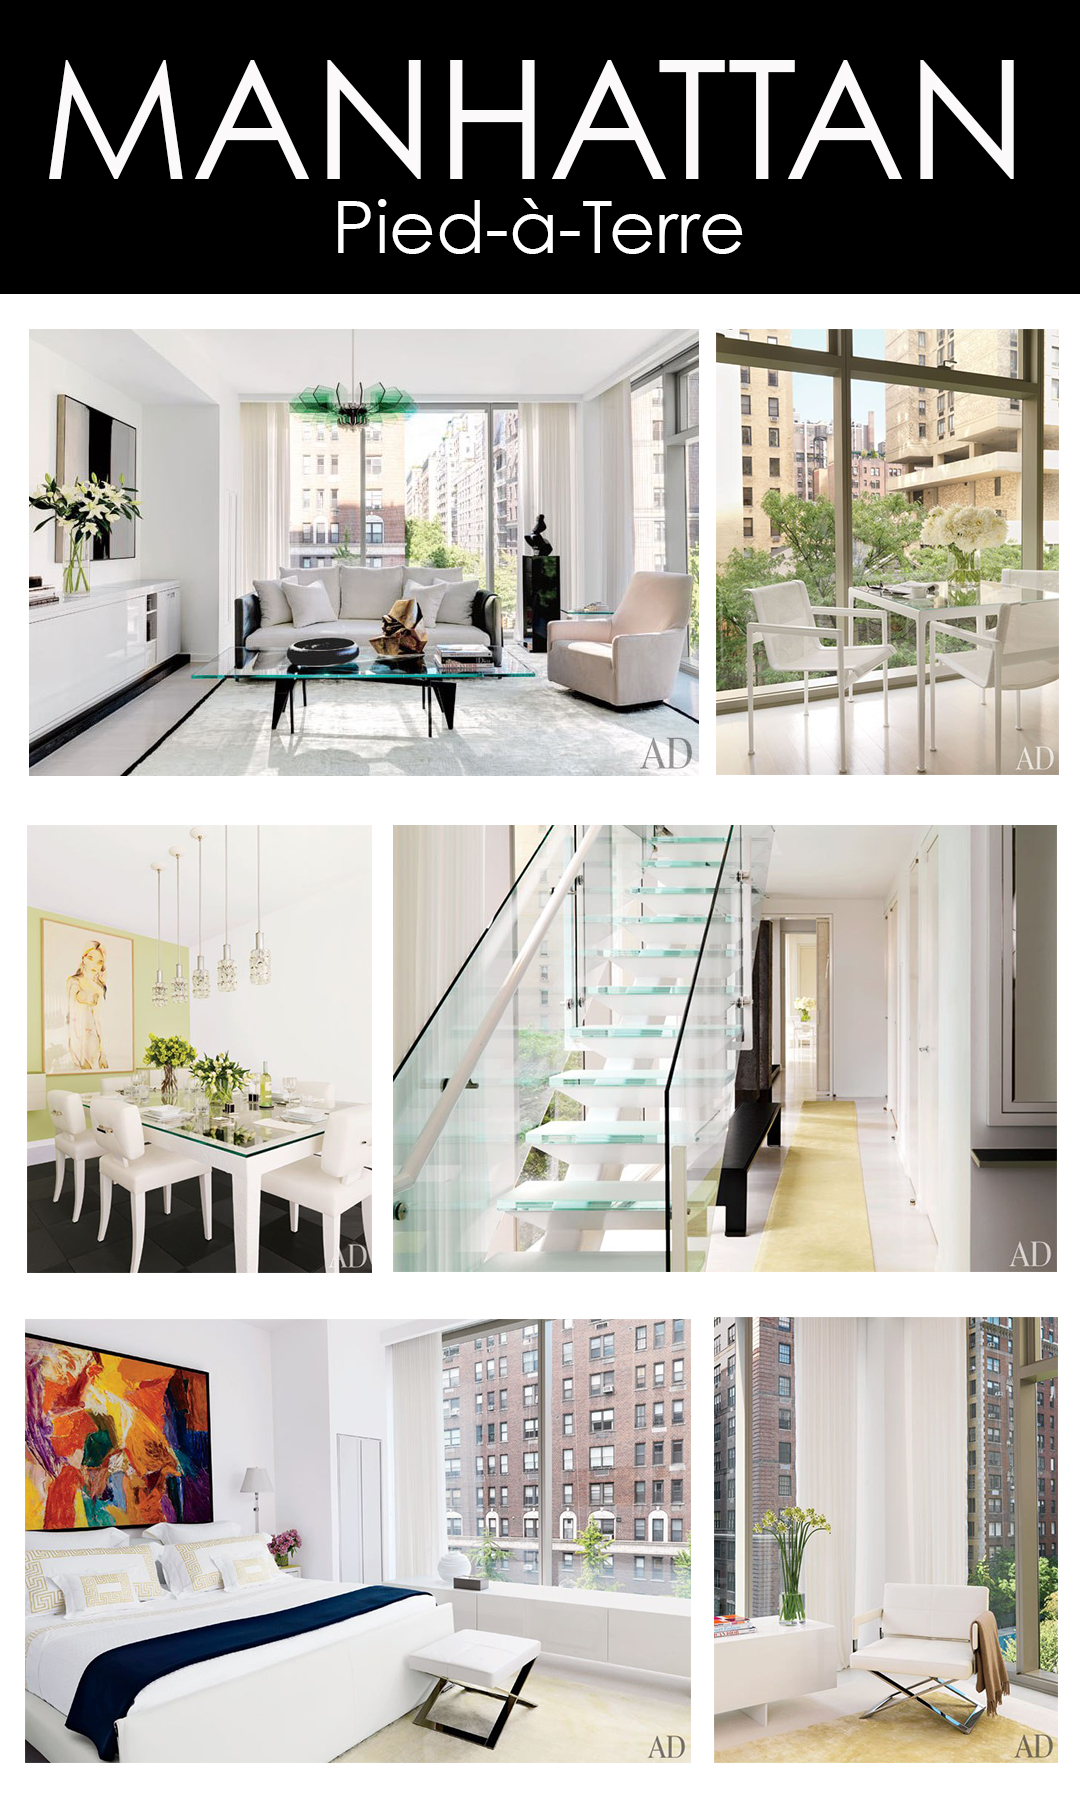 Architectural digest mountain home decor page 2 for Pied a terre manhattan